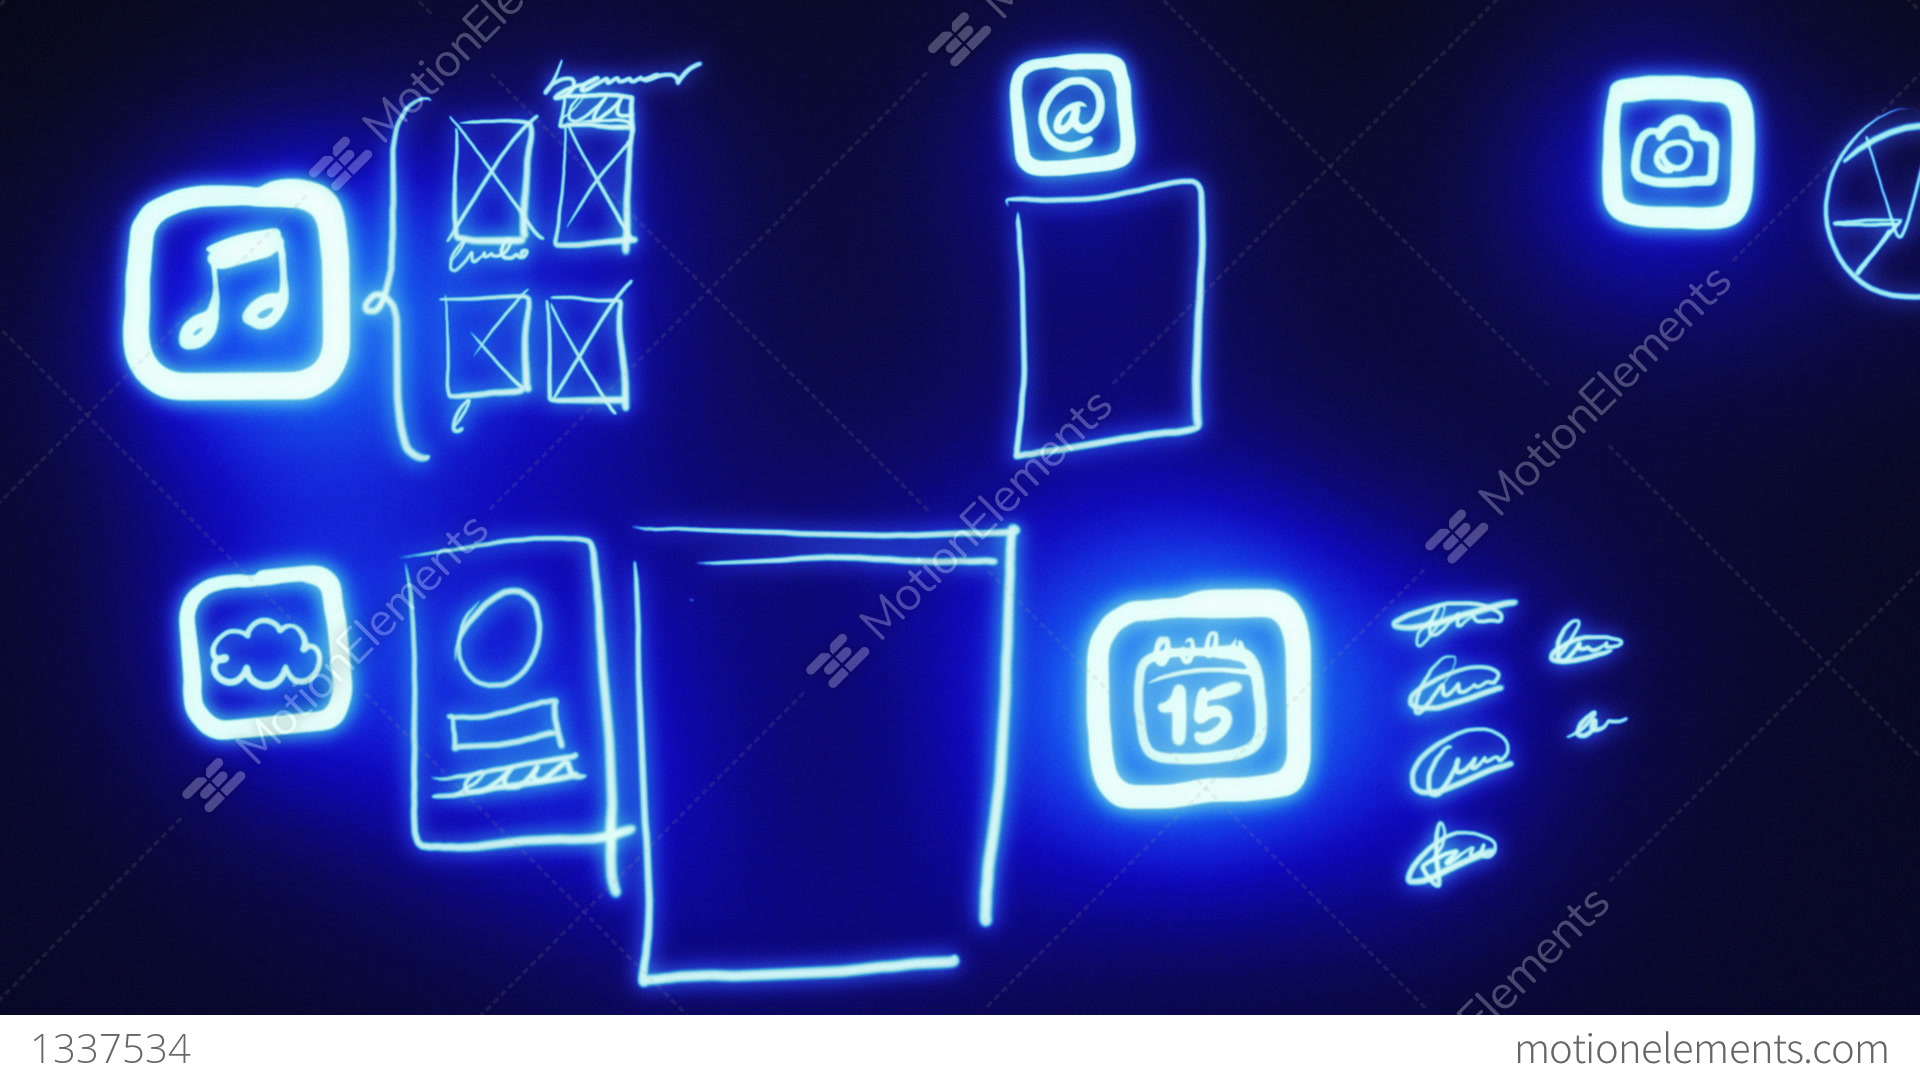 Mobile app wireframing prototyping neon blueprint stock mobile app wireframing prototyping neon blueprint stock video footage malvernweather Images